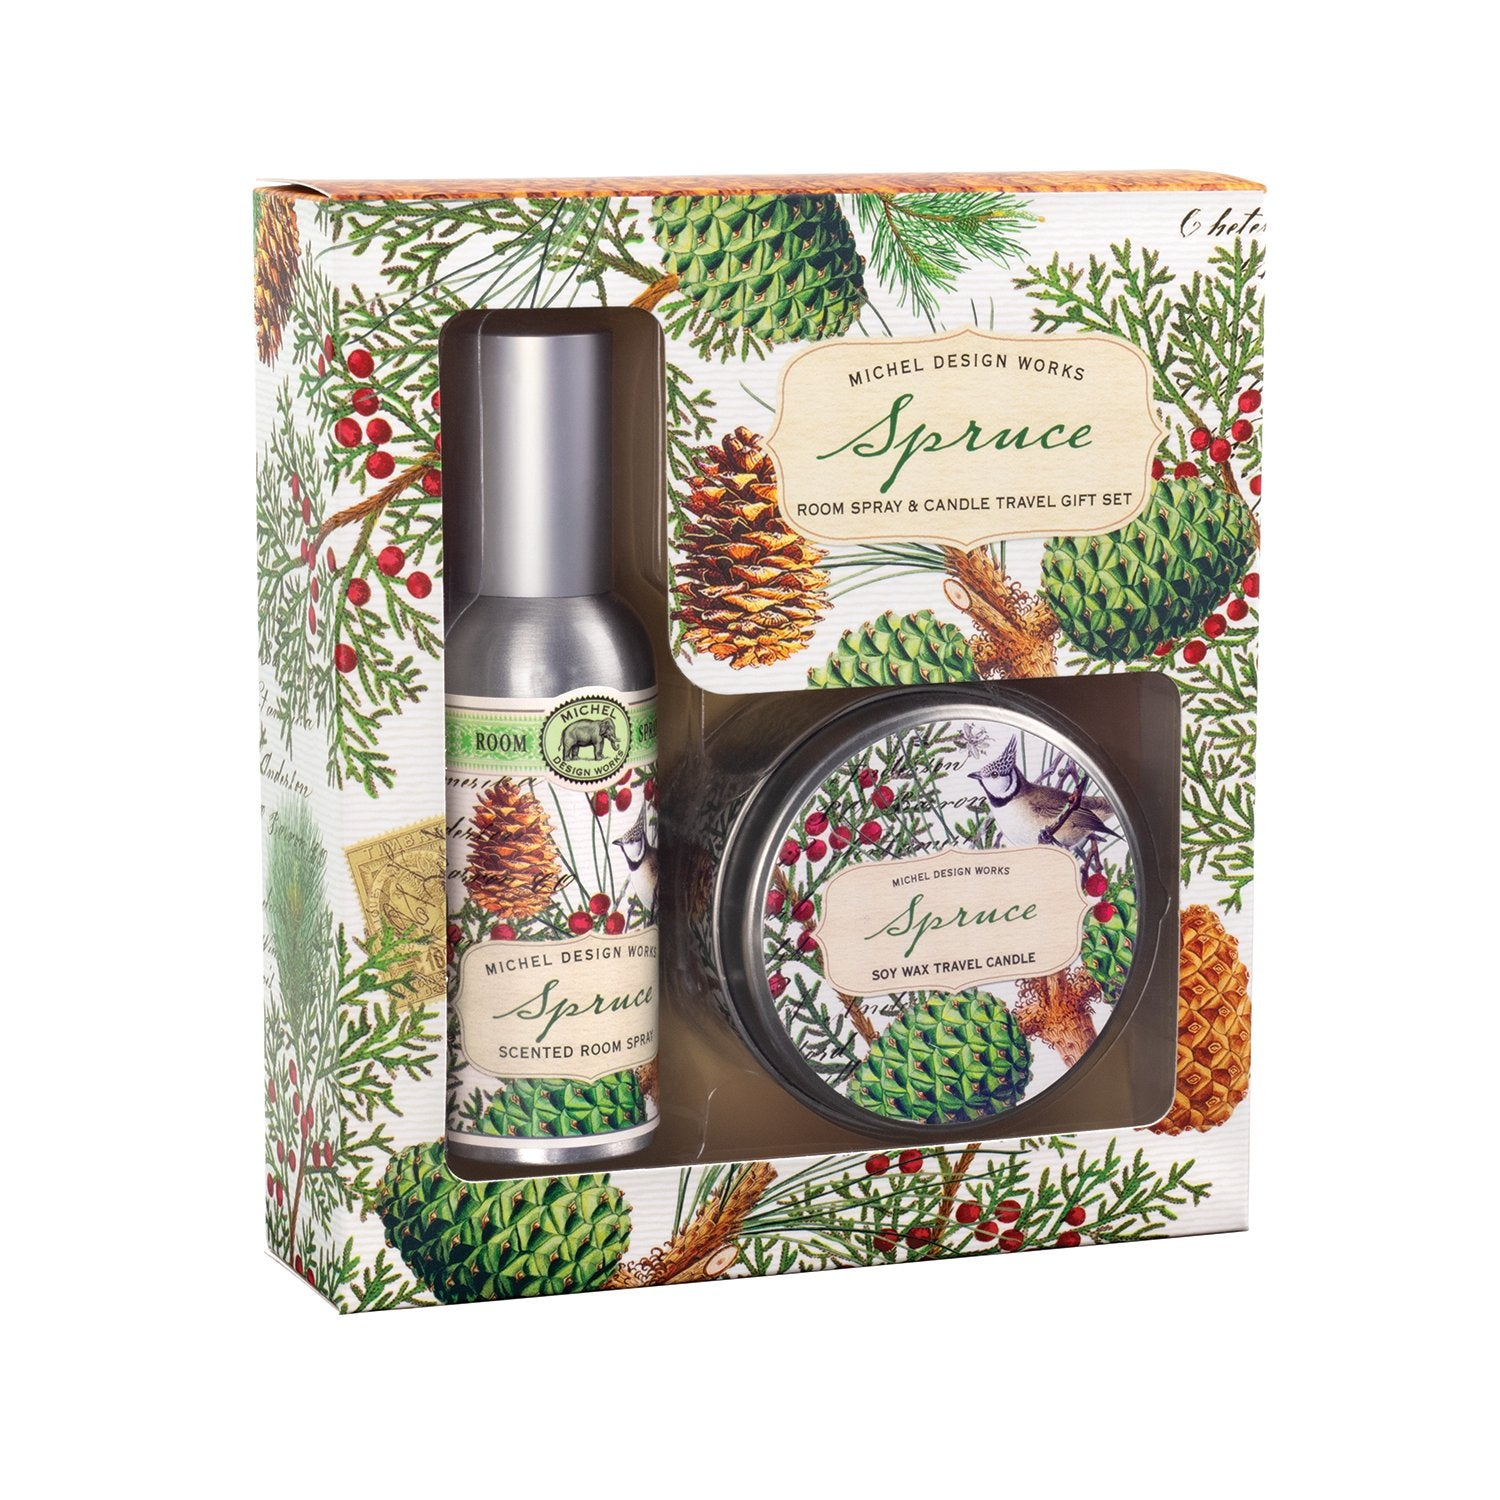 Spruce Room Spray and Candle Travel Gift Sets